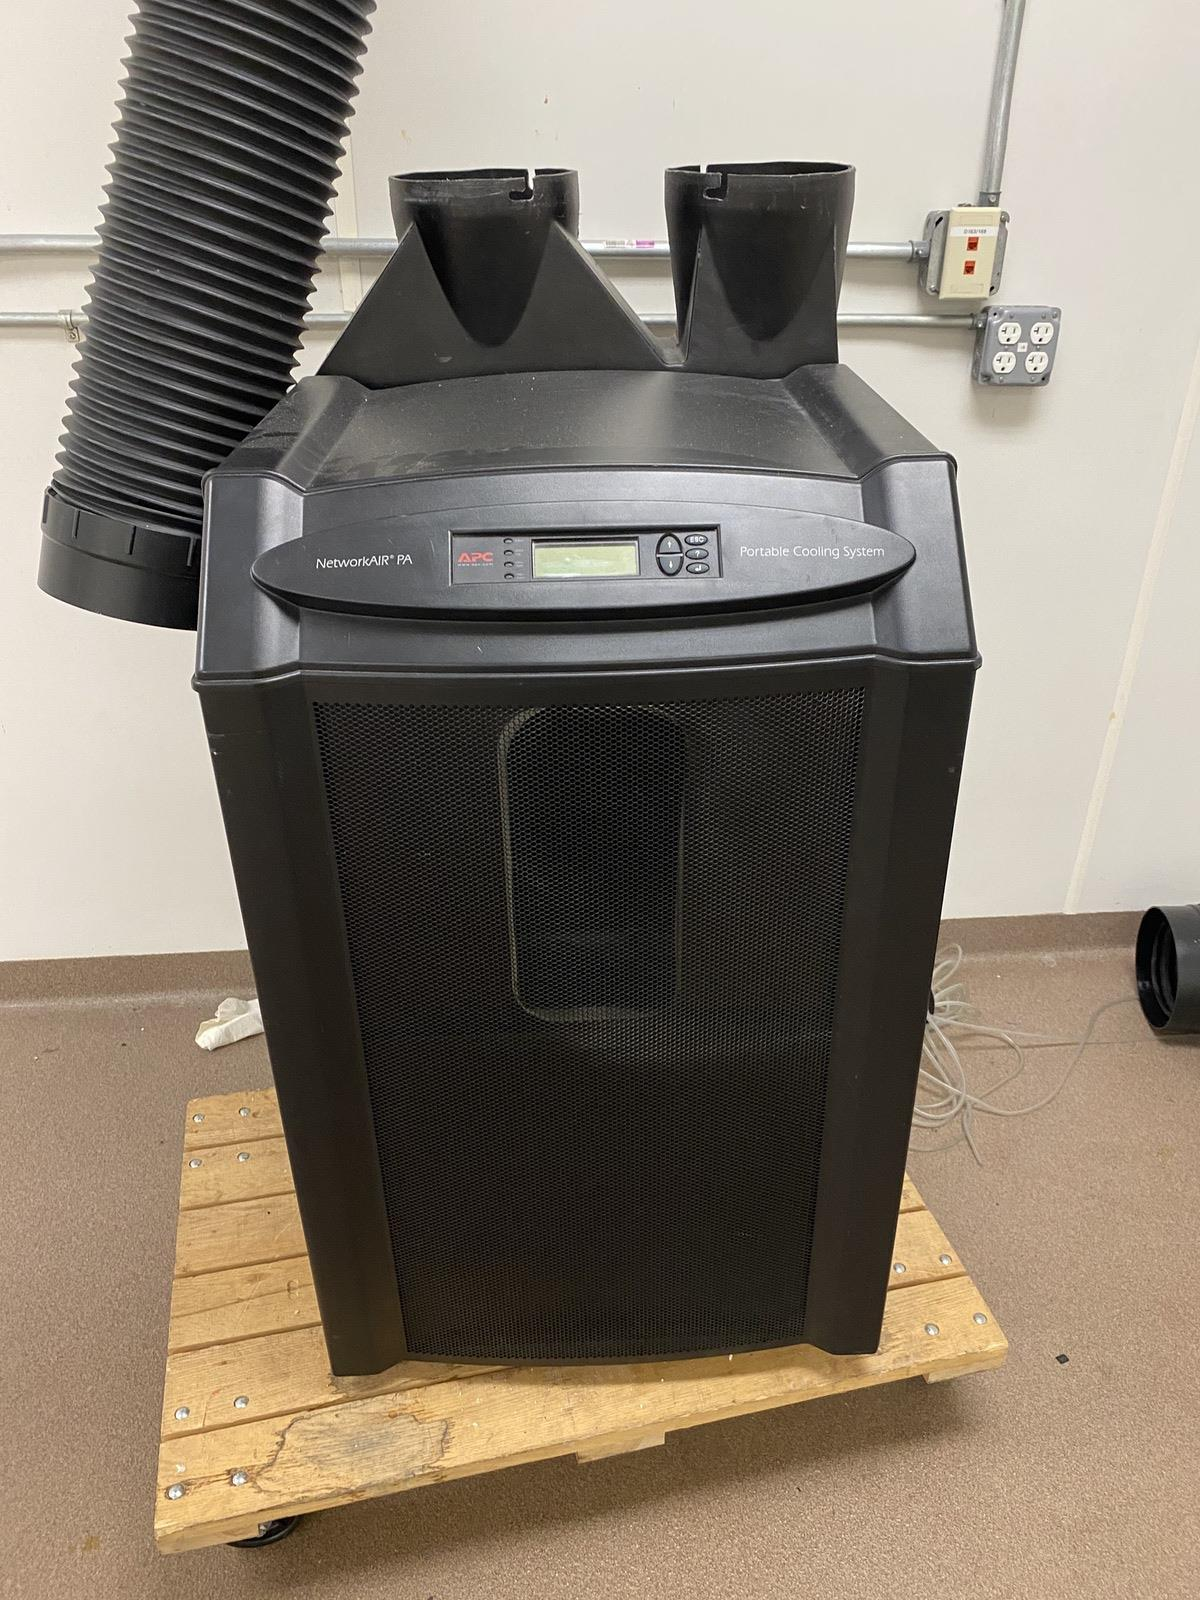 Lot 14 - Network AirPA Portable Cooling System | Load Fee: $50